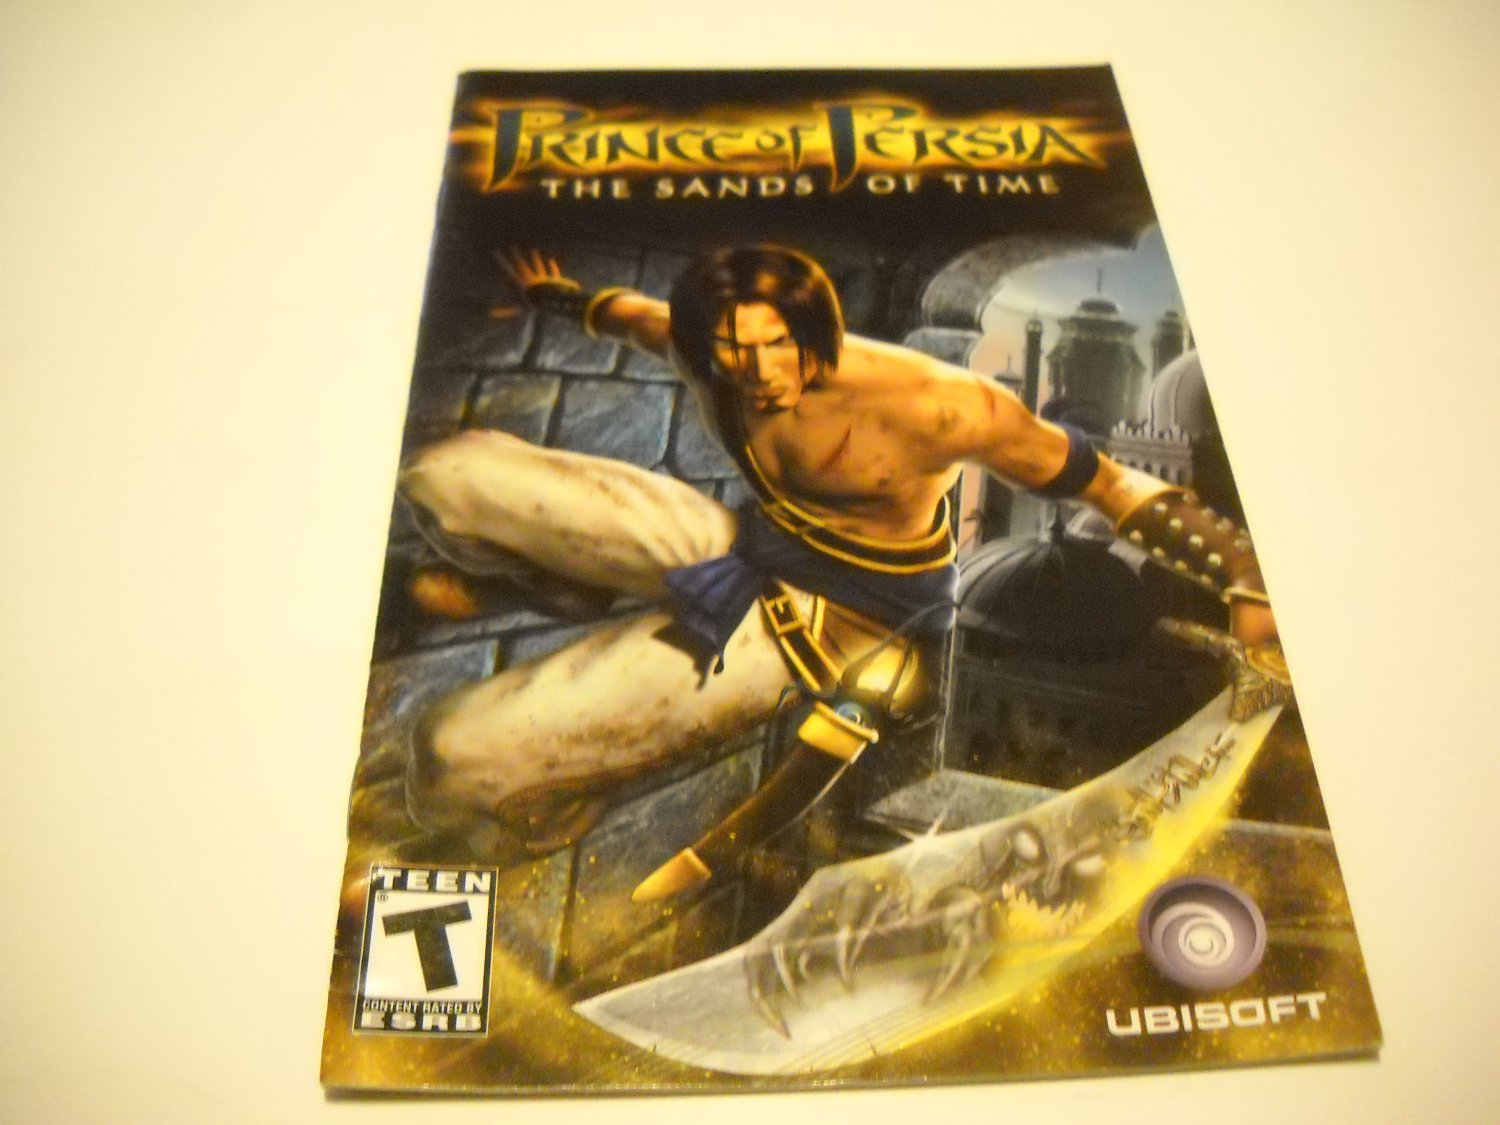 Manual ONLY ~  for Prince of Persia The Sands of Time   Ps2